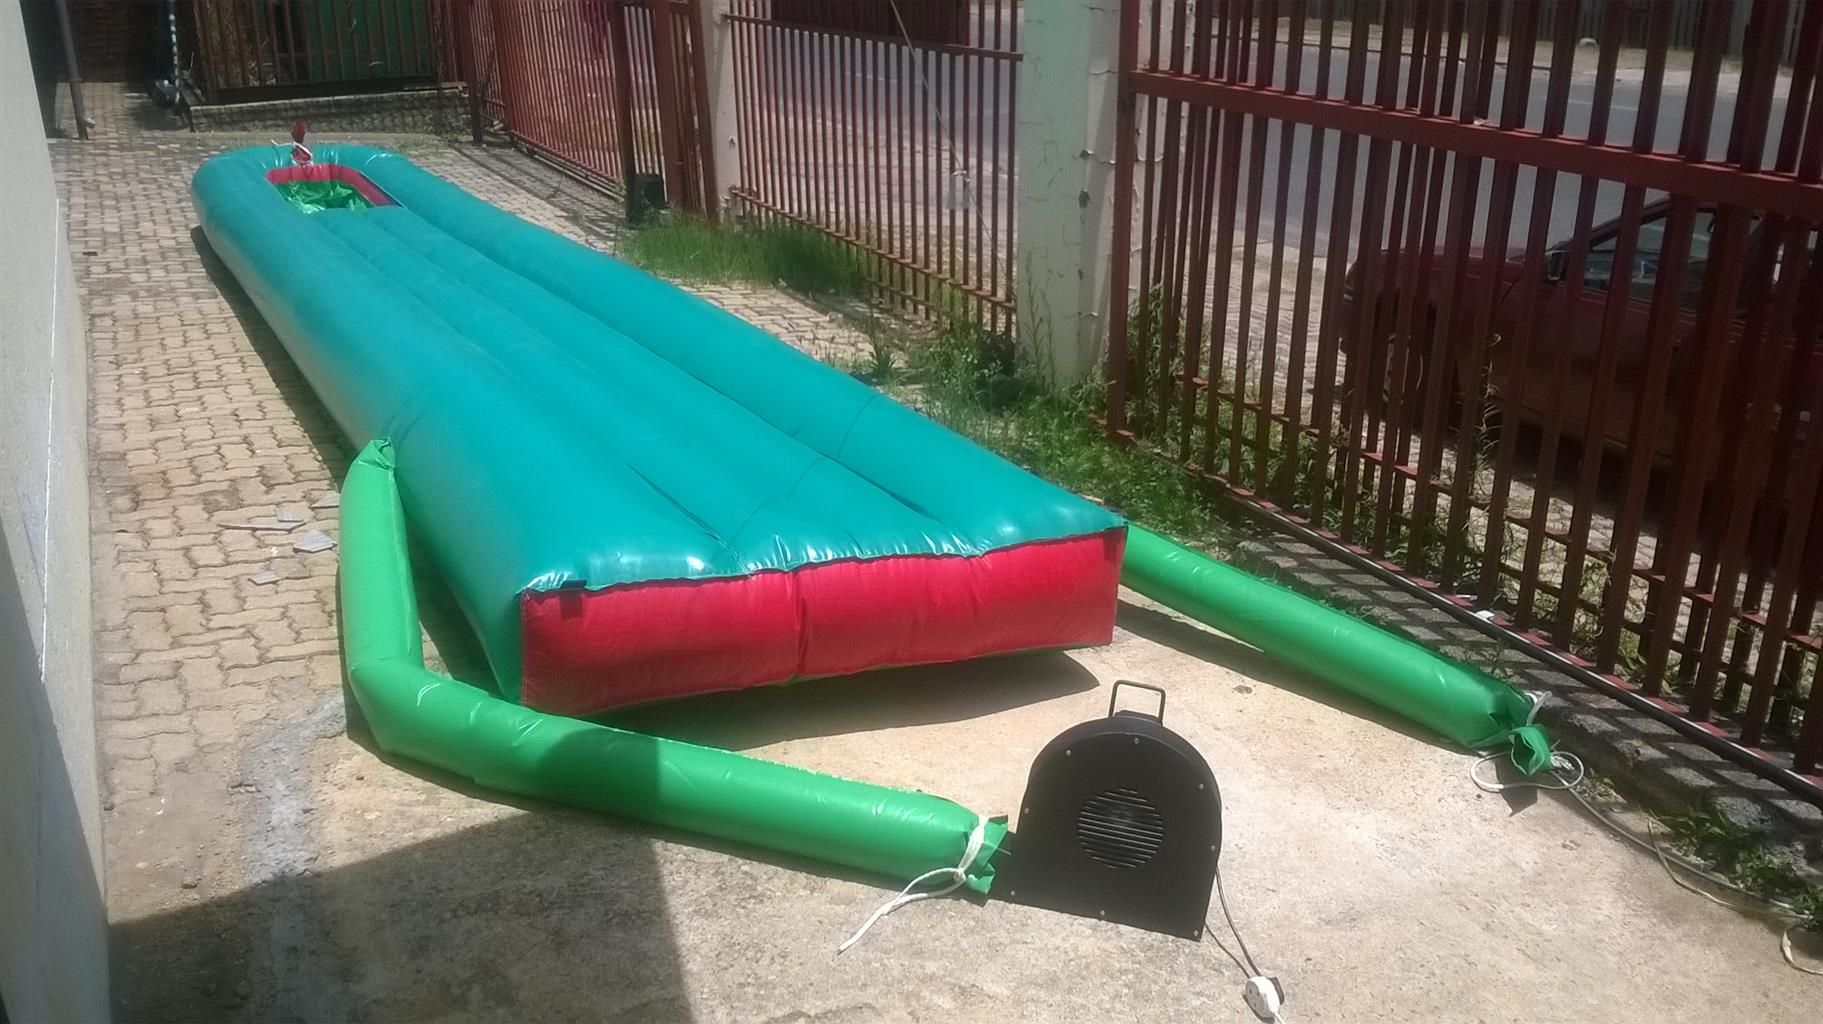 NEW WATER SLIDE 8M WITH BLOWER FOR SALE AT A BARGAIN PRICE.